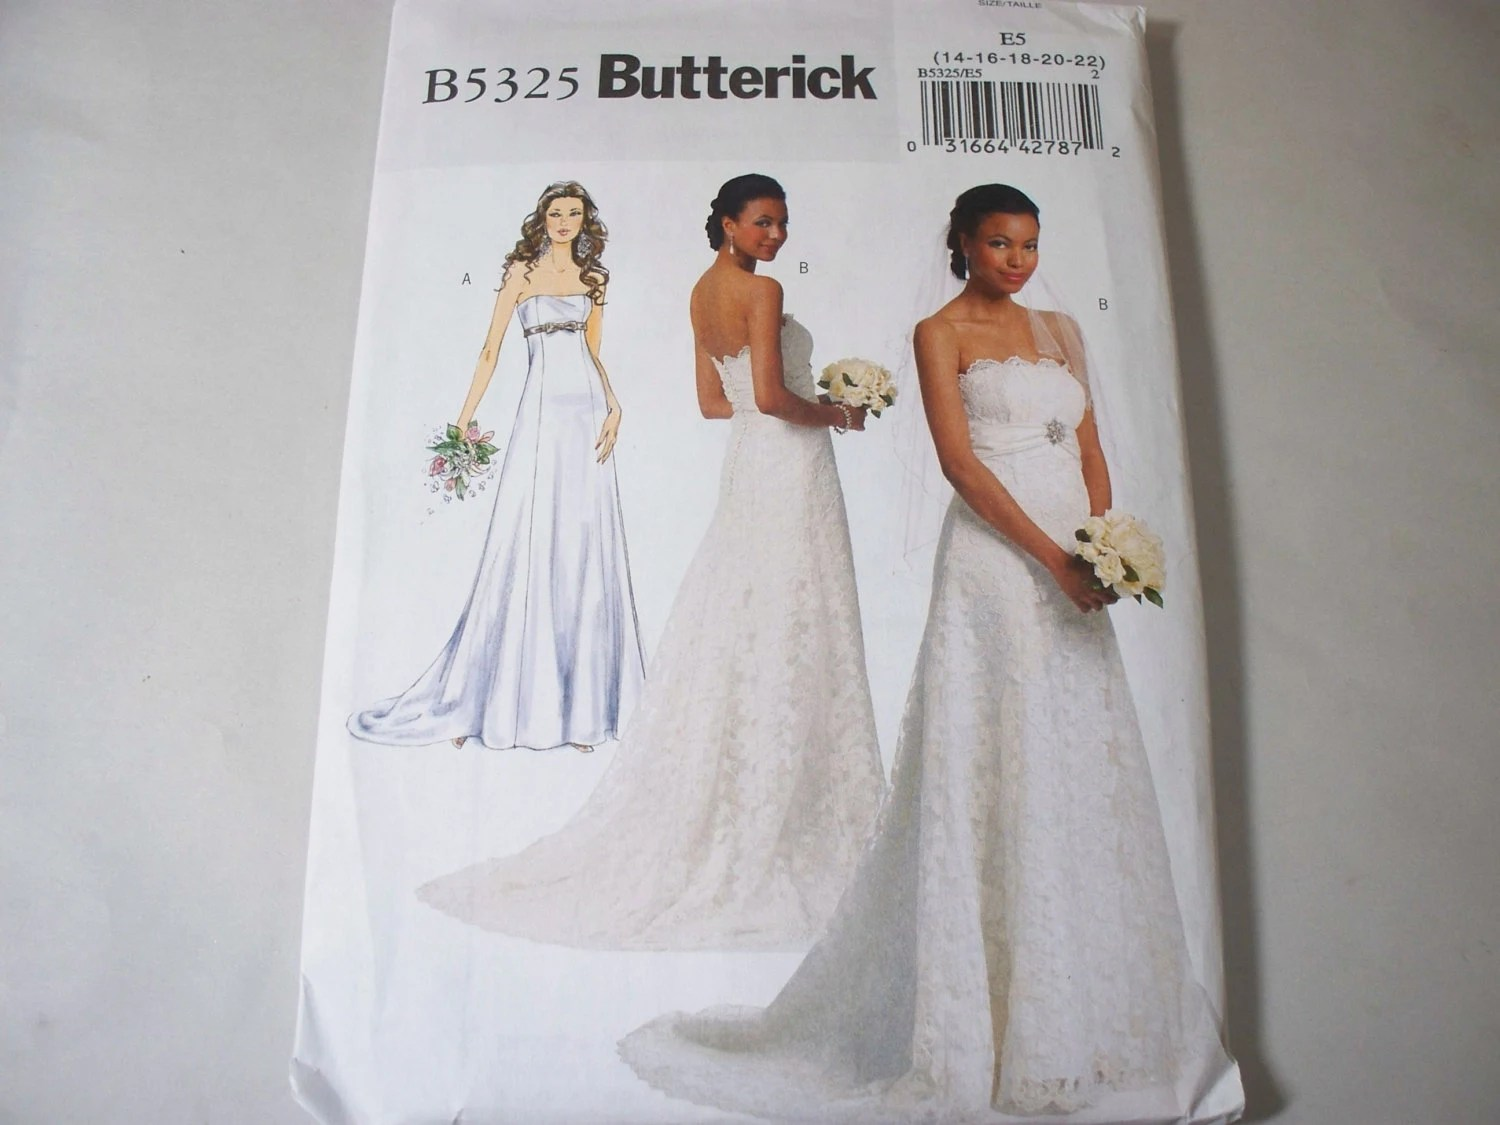 New Butterick Bridal Gown Pattern B5325 E5 14-16-18-20-22